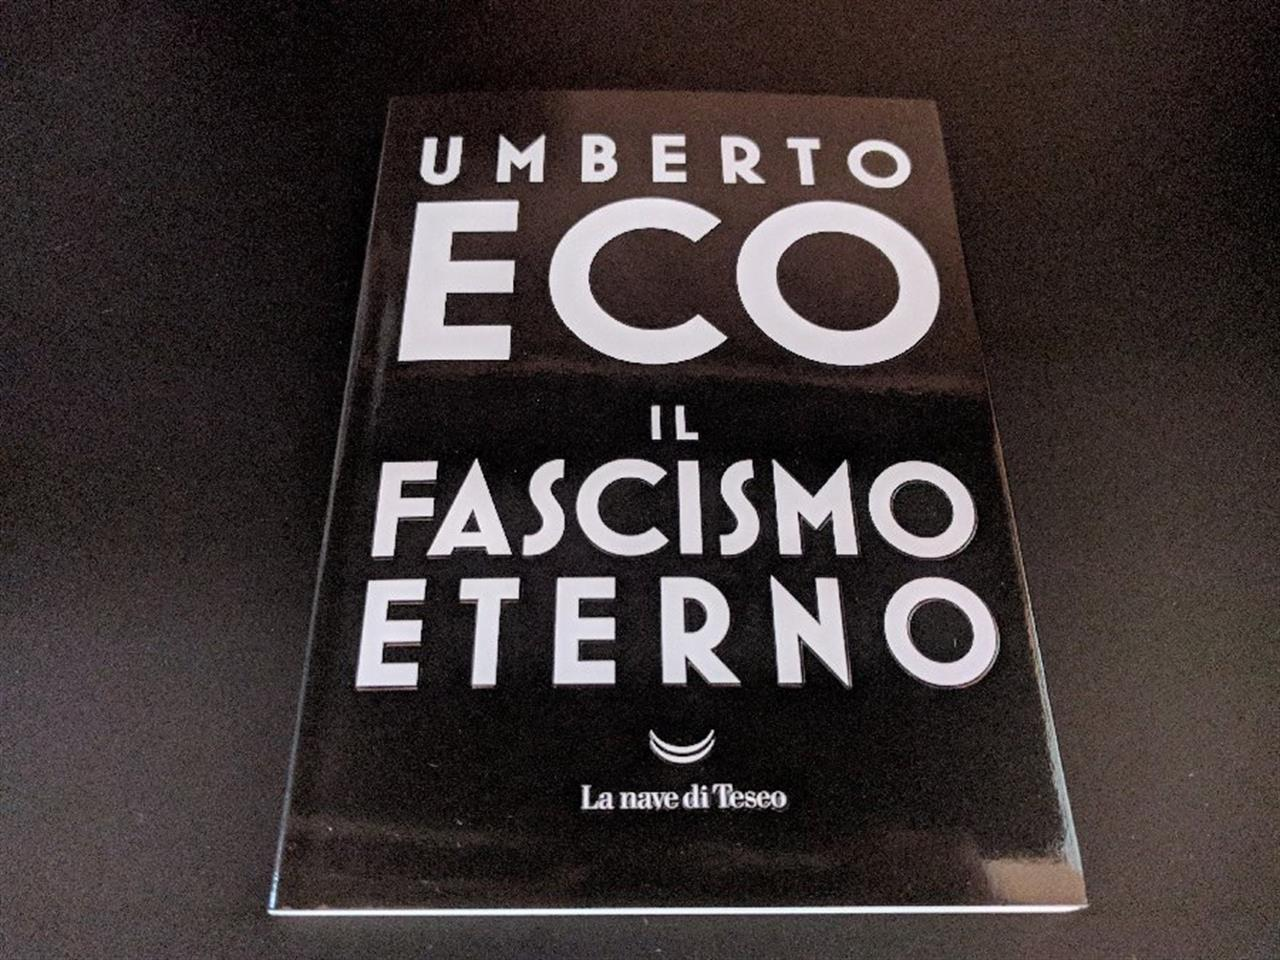 fascismo eterno eco